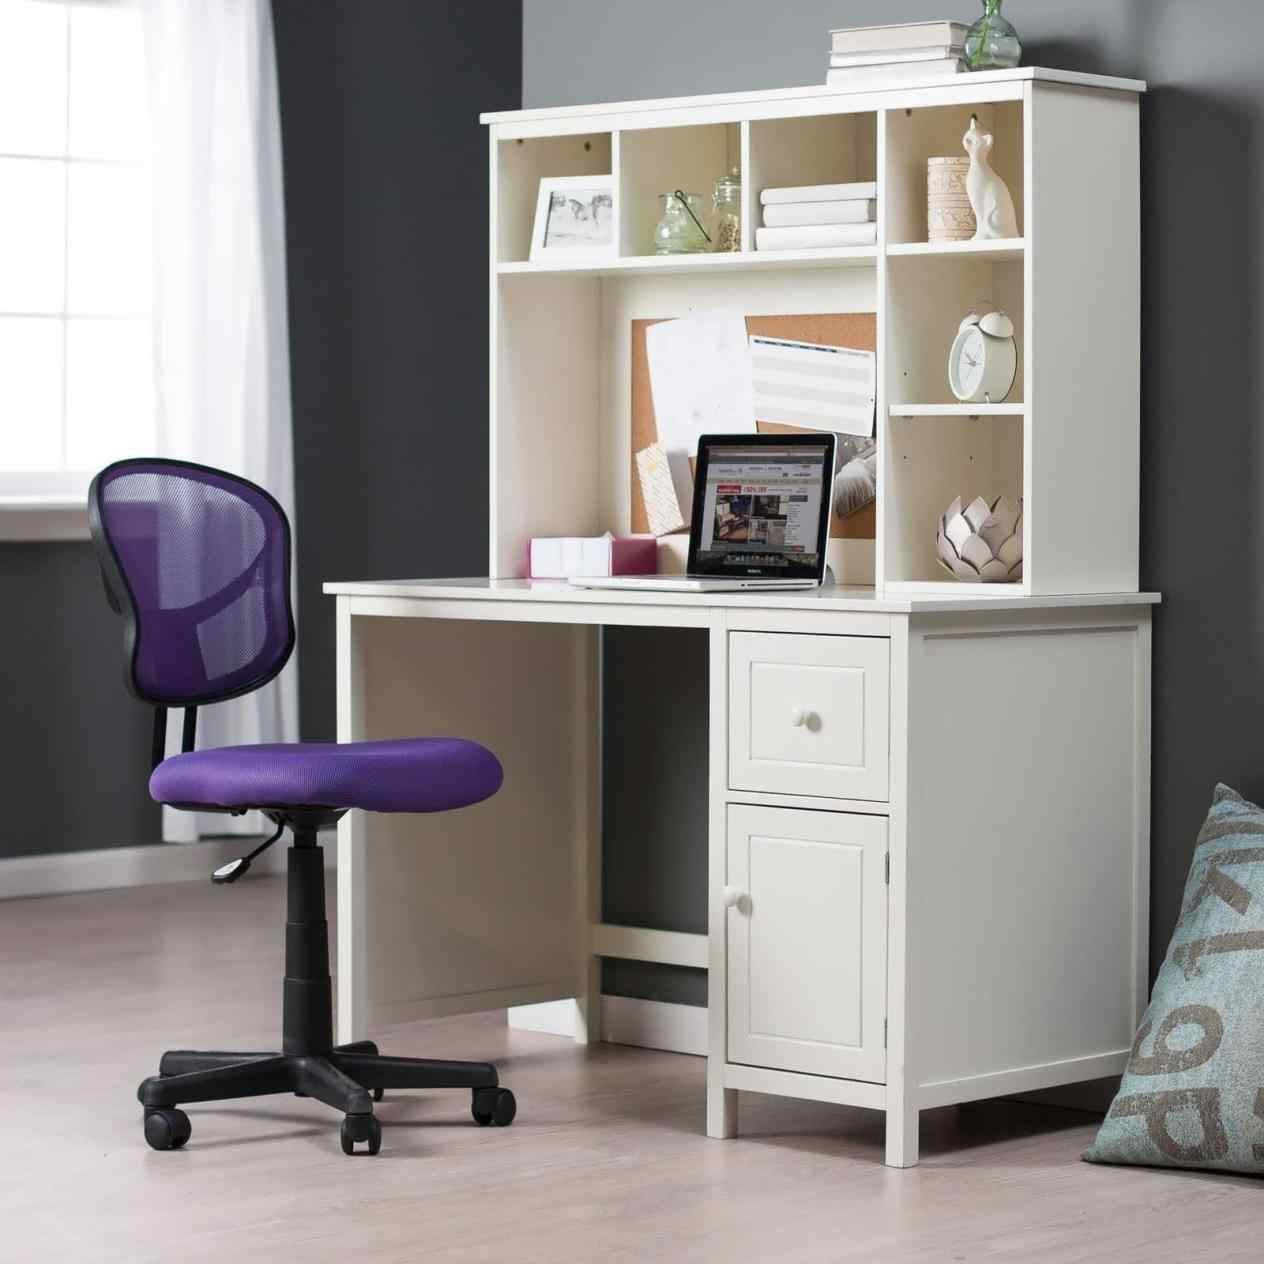 Best ideas about Used Office Furniture Austin . Save or Pin Used fice Furniture Baton Rouge Now.